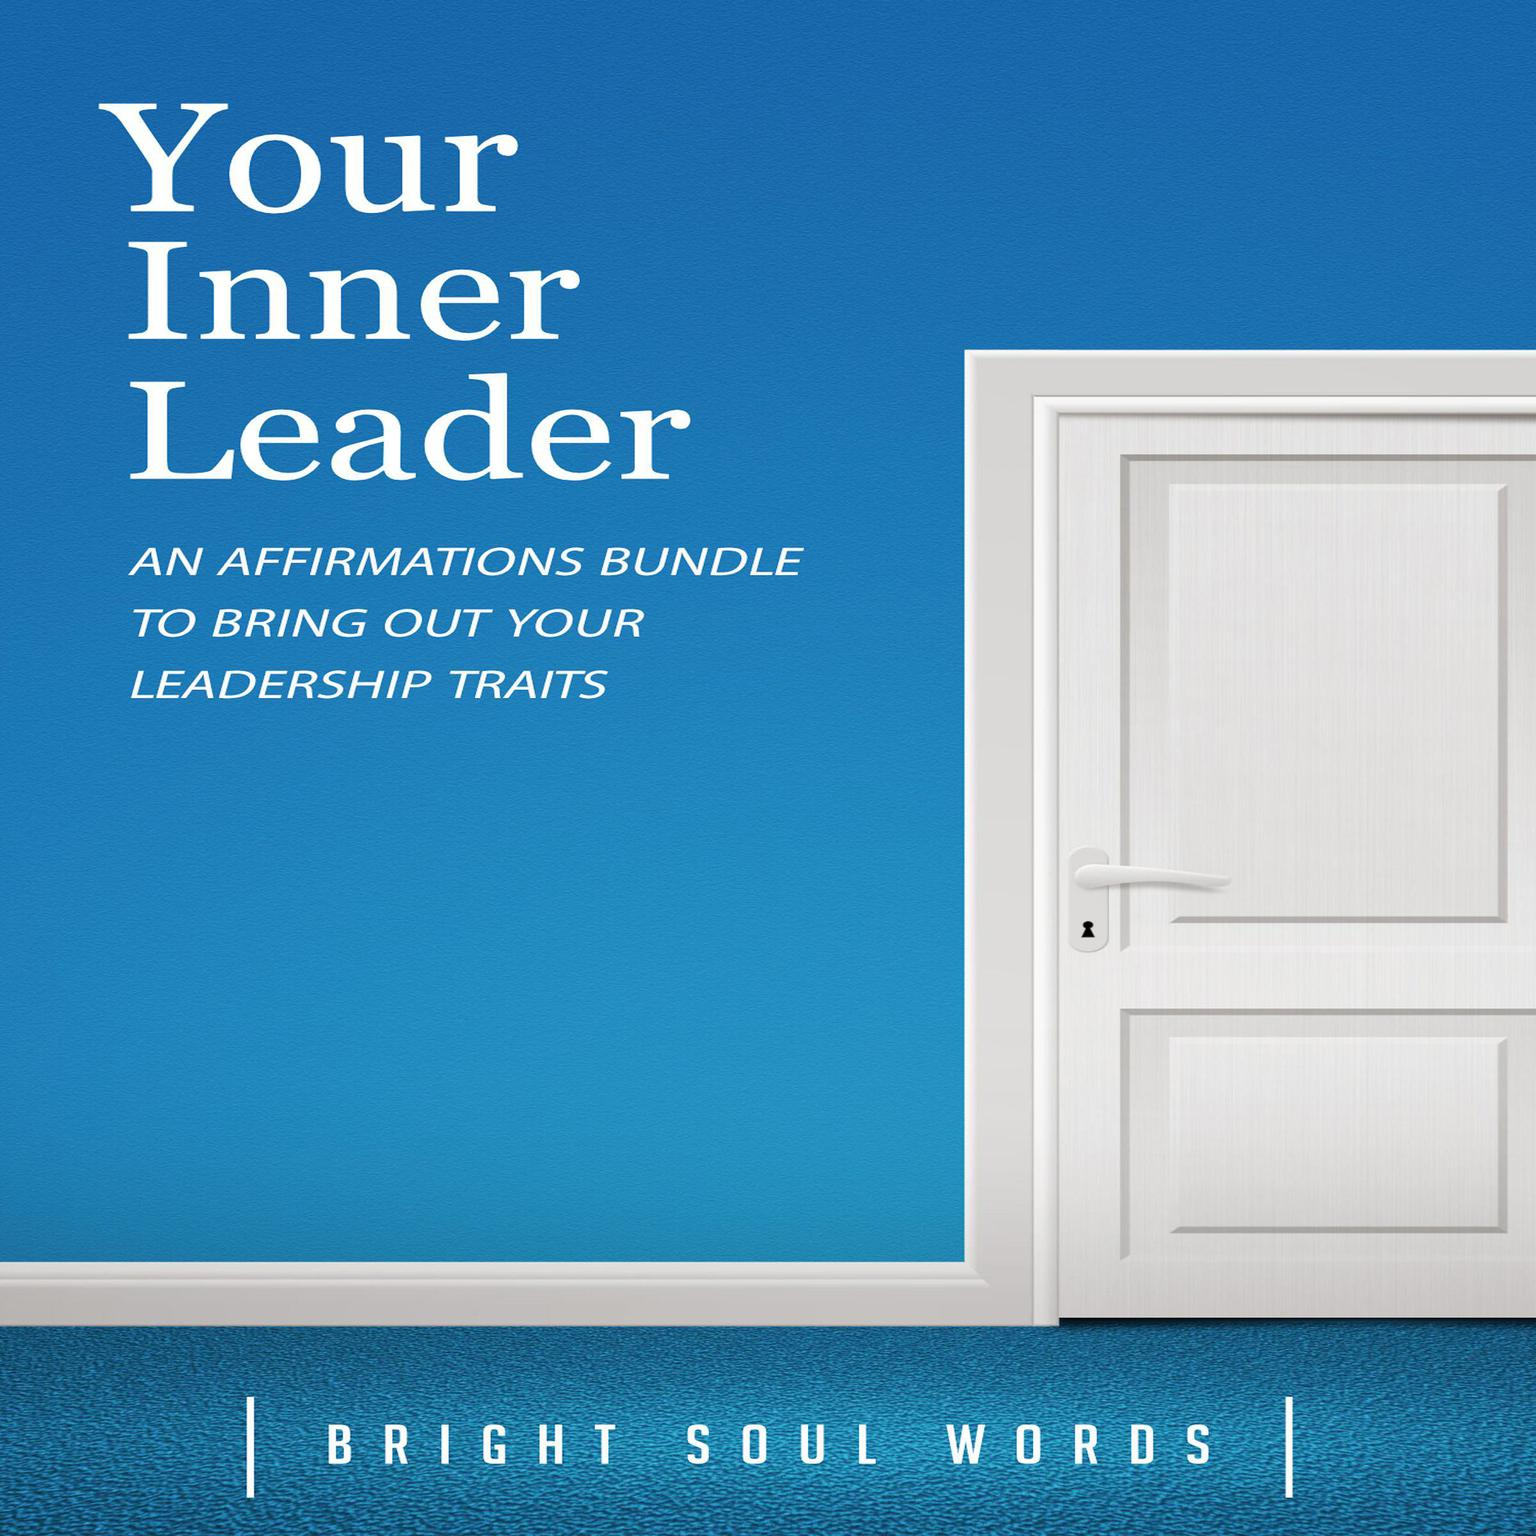 Your Inner Leader: An Affirmations Bundle to Bring Out Your Leadership Traits Audiobook, by Bright Soul Words